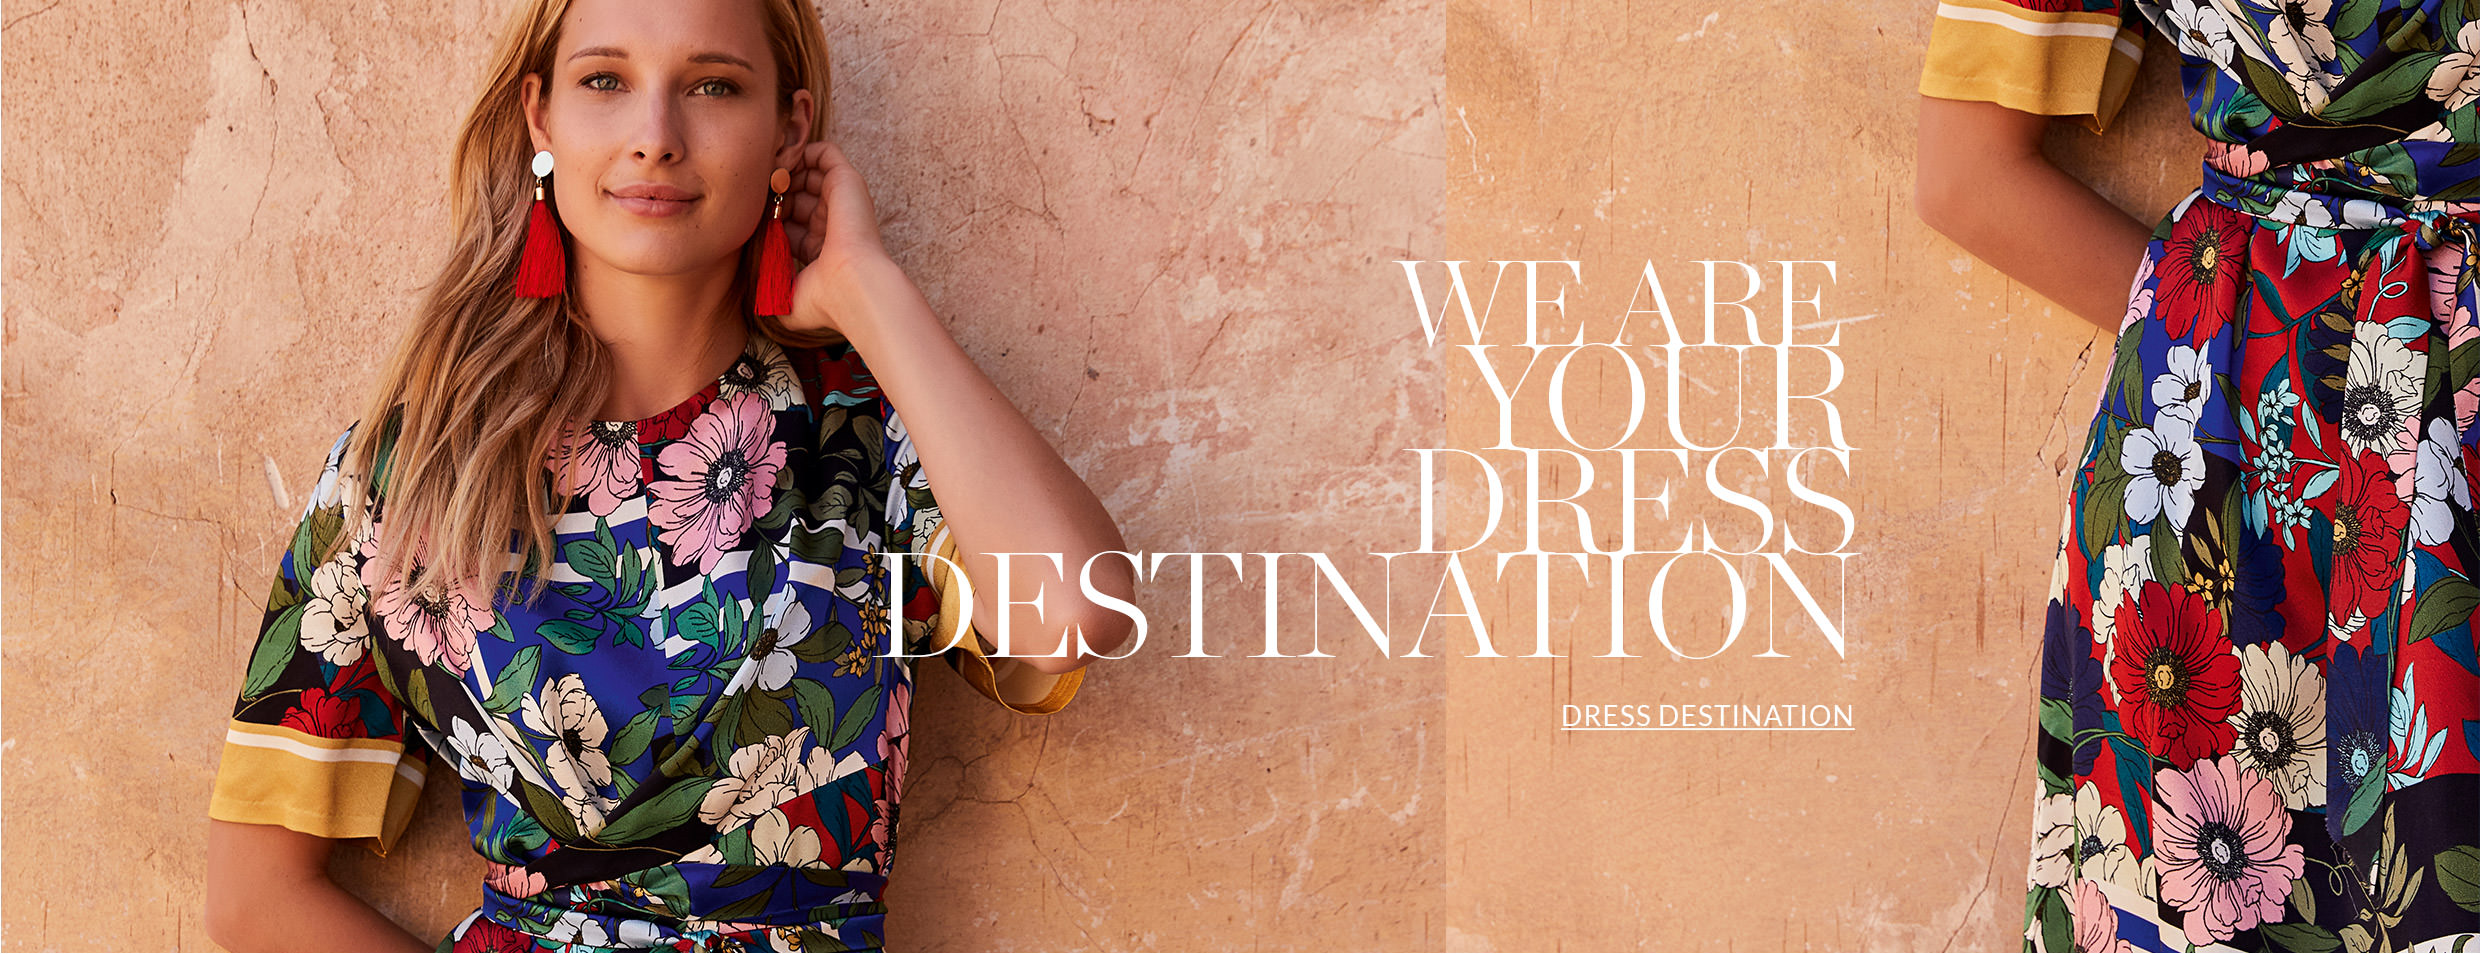 dress-destination